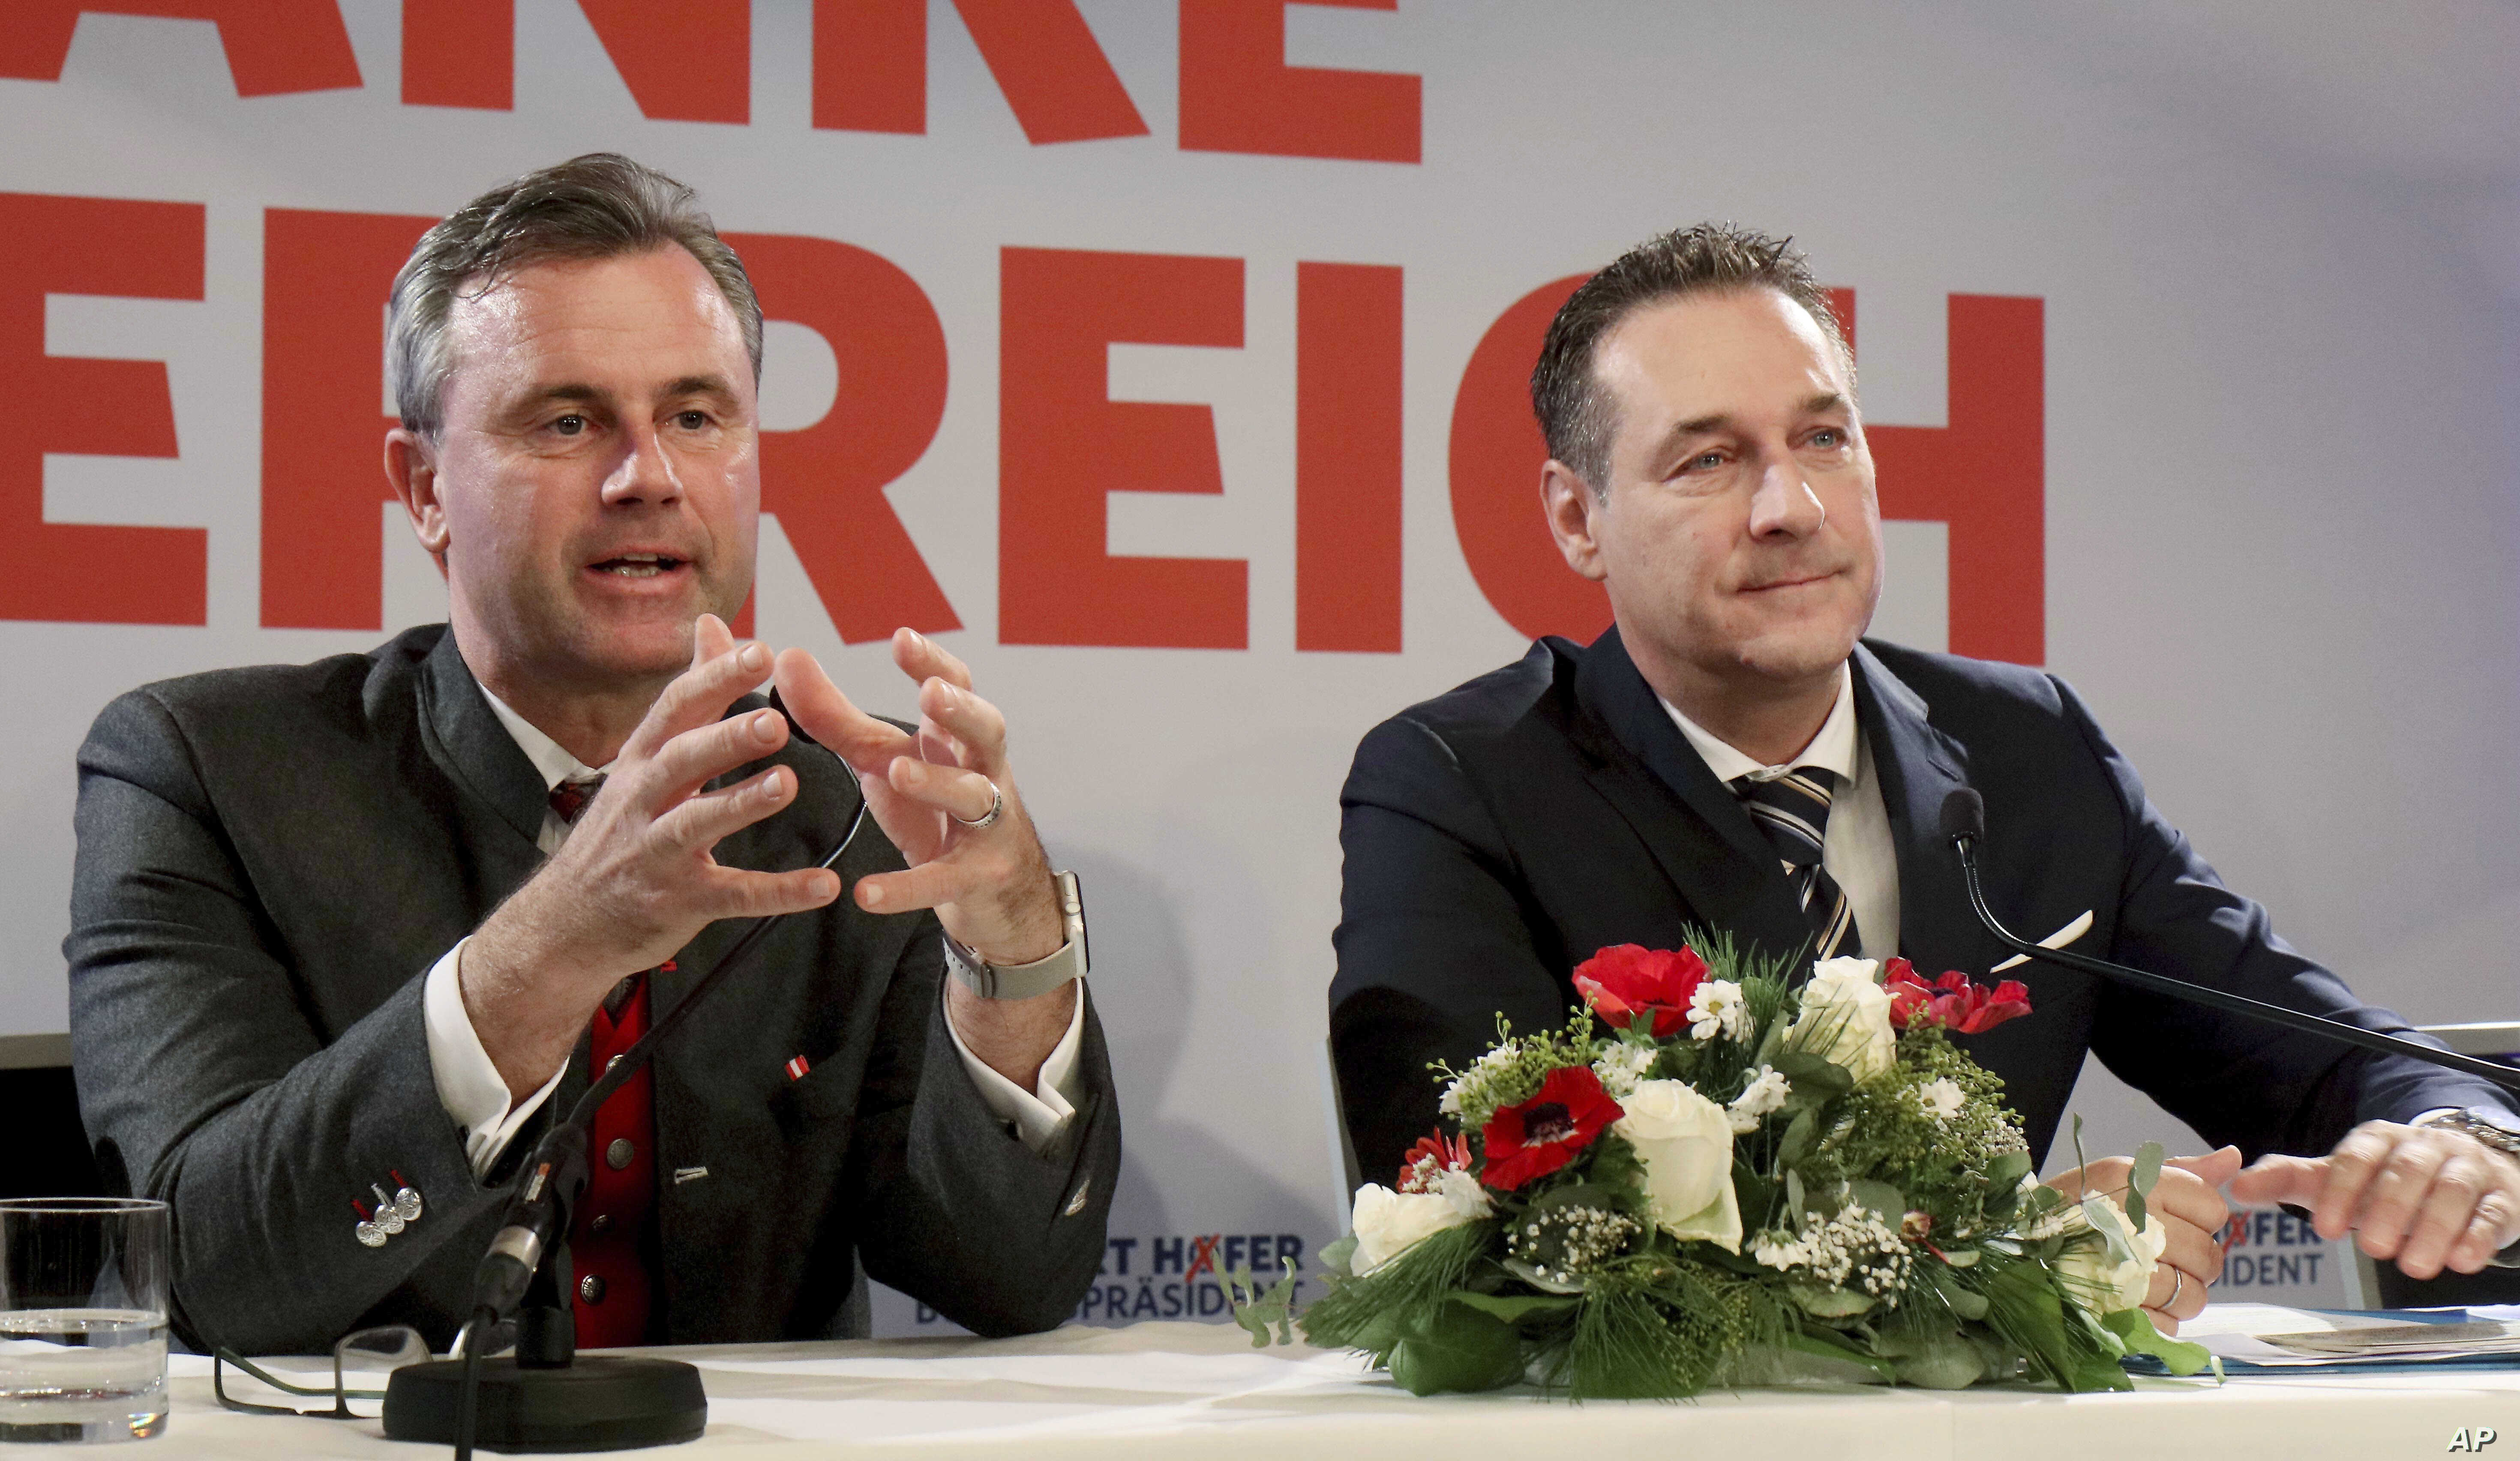 Norbert Hofer (L) and Heinz-Christian Strache of Austria's anti-migrant and anti-EU Freedom Party (FPO) attend a news conference in Vienna, Austria, Dec. 6, 2016.